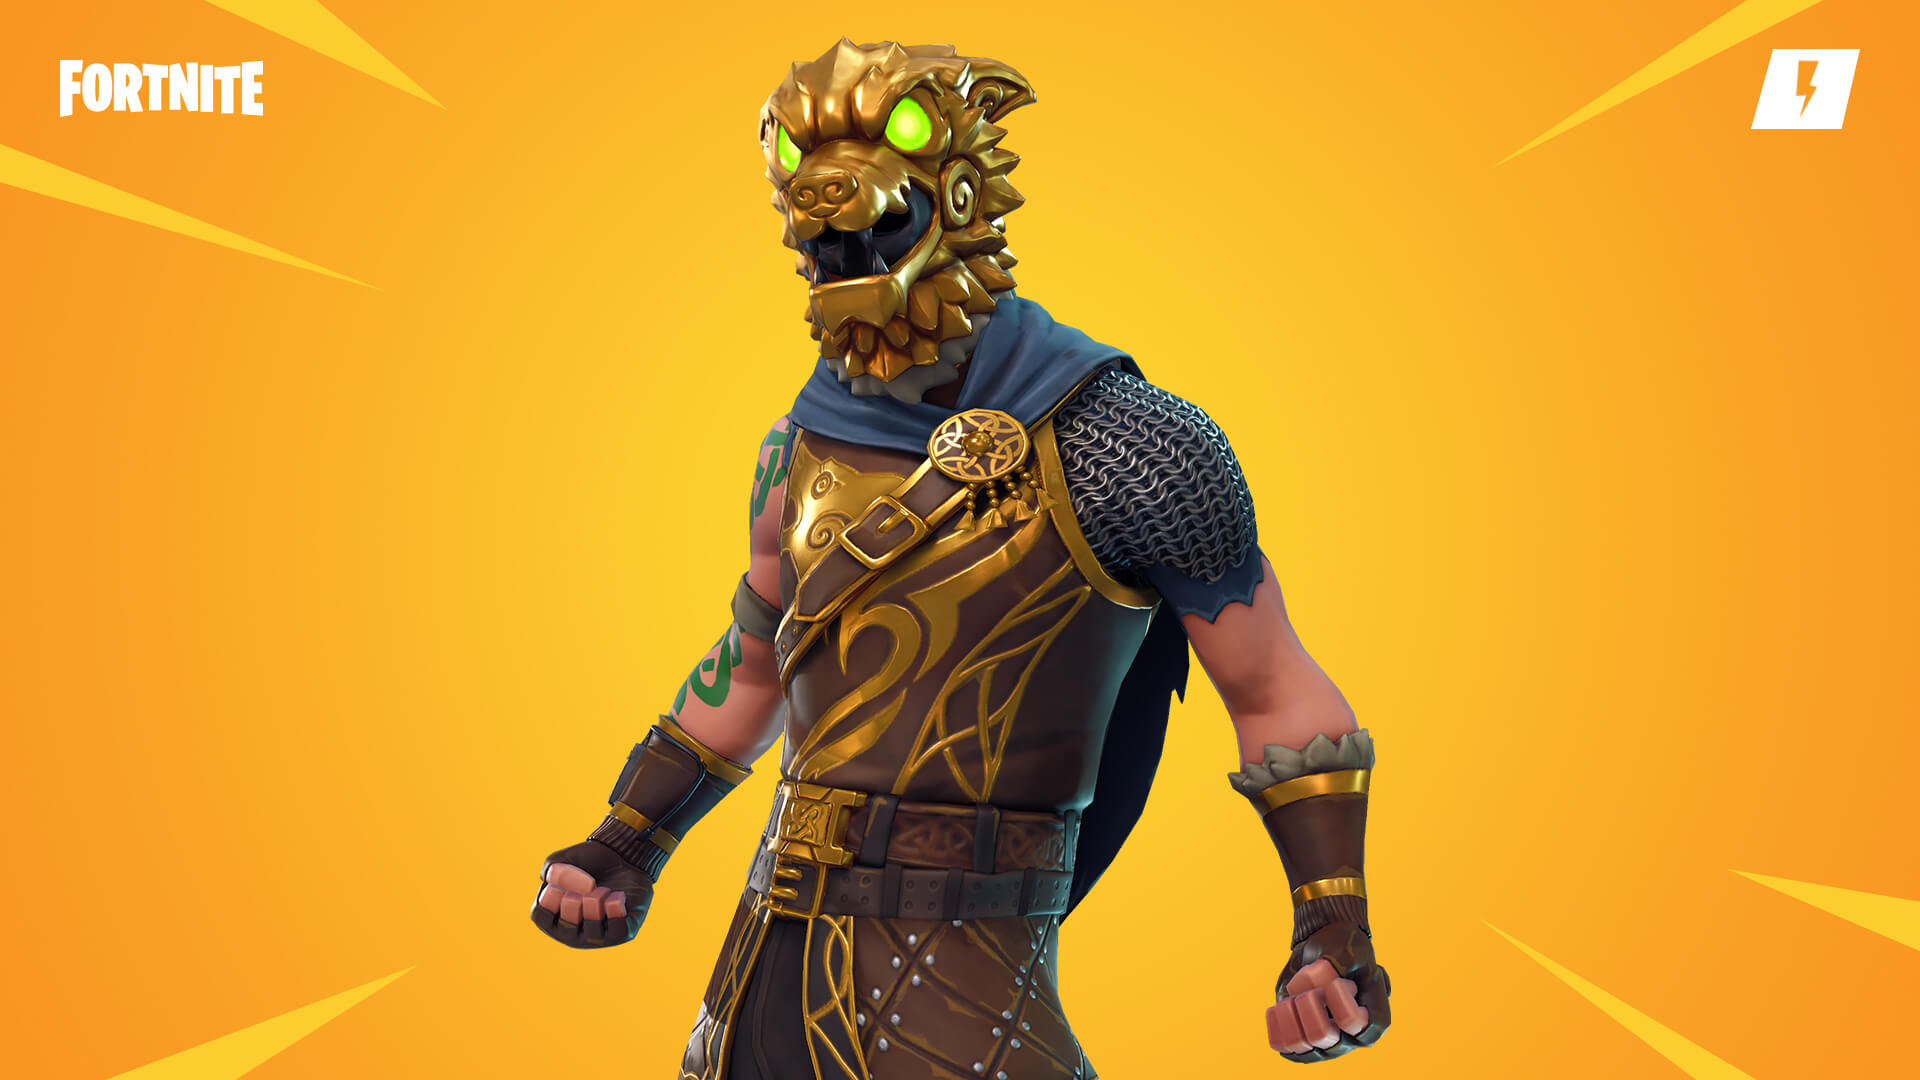 Fortnite Save The World Battle Hound Jonesy